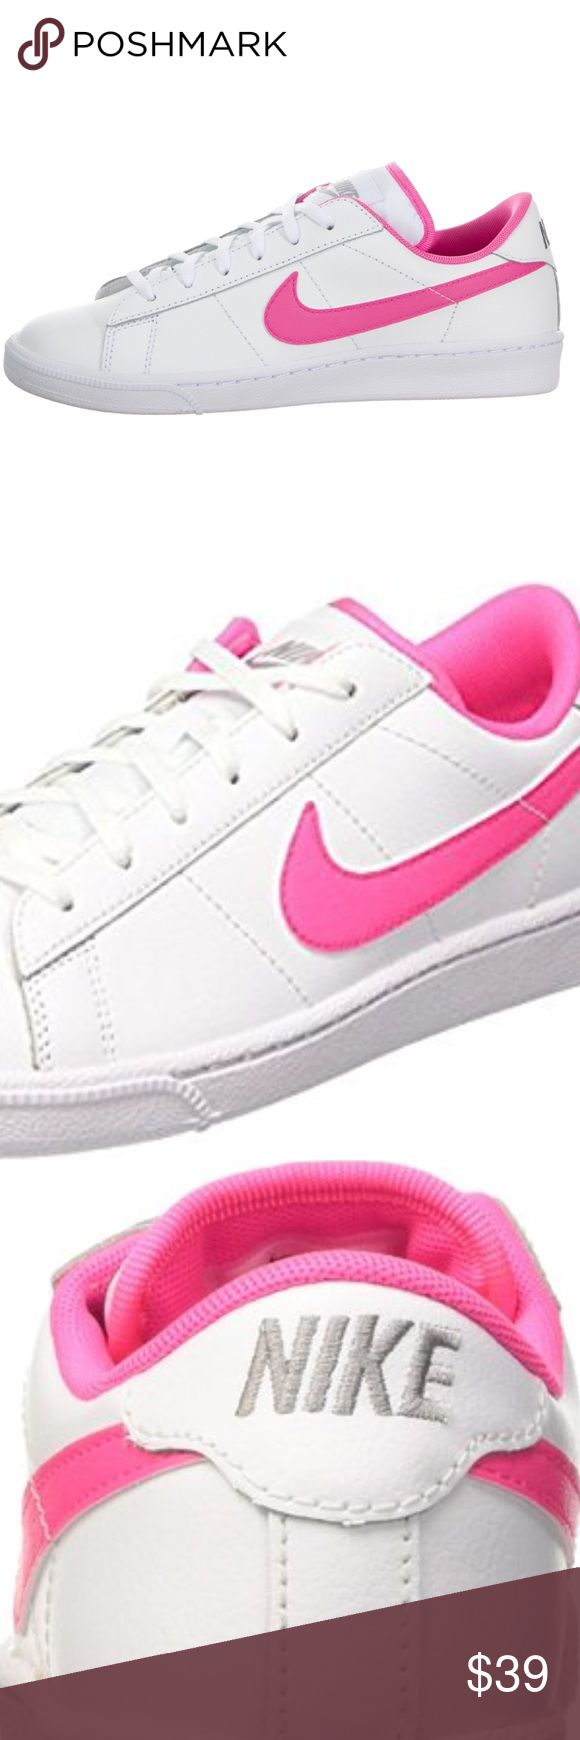 NWT NIKE SNEAKERS TENNIS 🎾 CLASSIC (GS) Pink-Pow Brand new in box. White/pink-pow. Youth size 5.5. Nike equation chart indicates that a 5.5Y is equivalent to a Size 7 in Womens. These are super cute! Comes from a smoke free home 🏡 Bundle & save!! Nike Shoes Sneakers